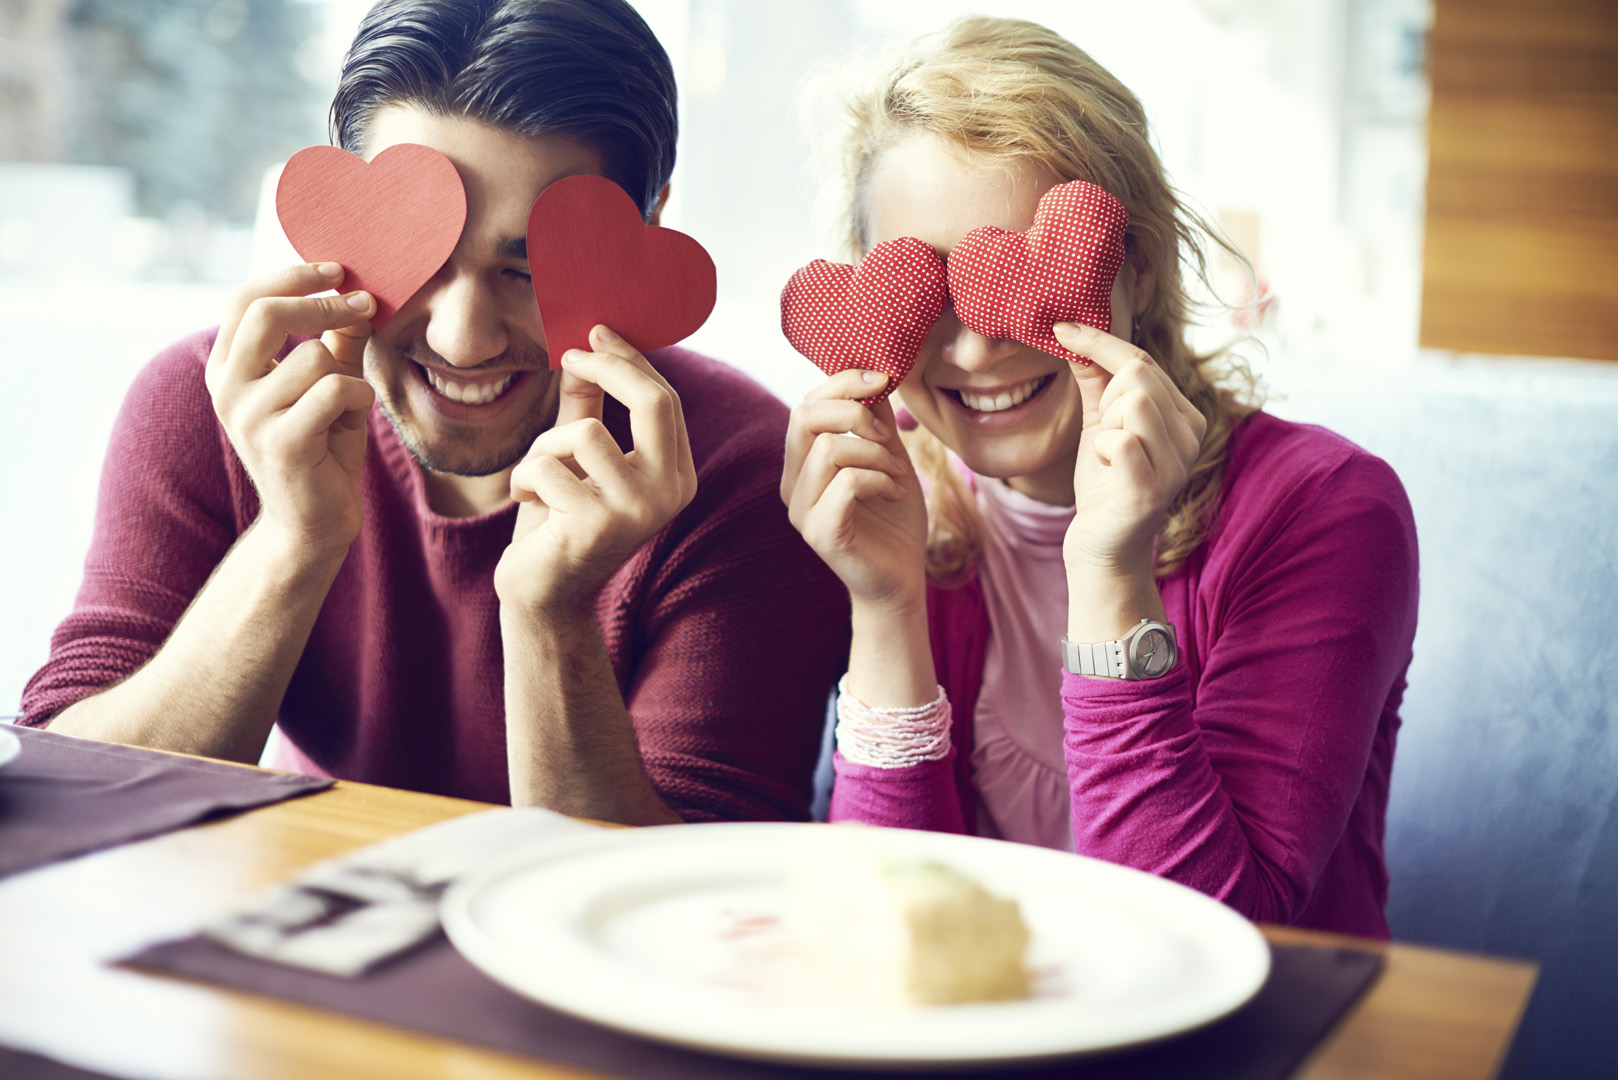 Unique Valentine's Day Date Ideas!